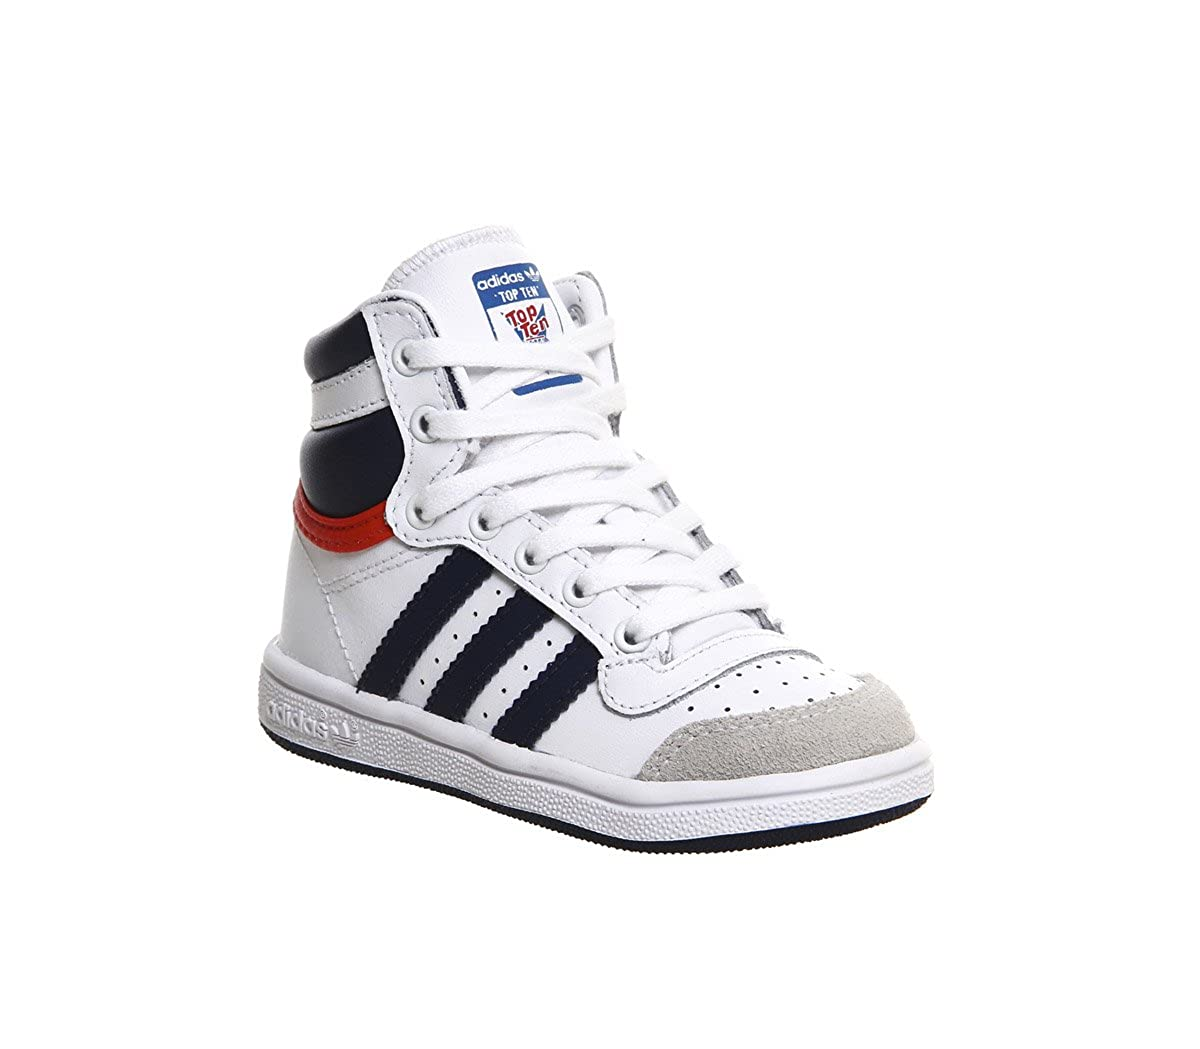 adidas Scarpa Bambino Top Ten Hi I M25303 (21): Amazon.it